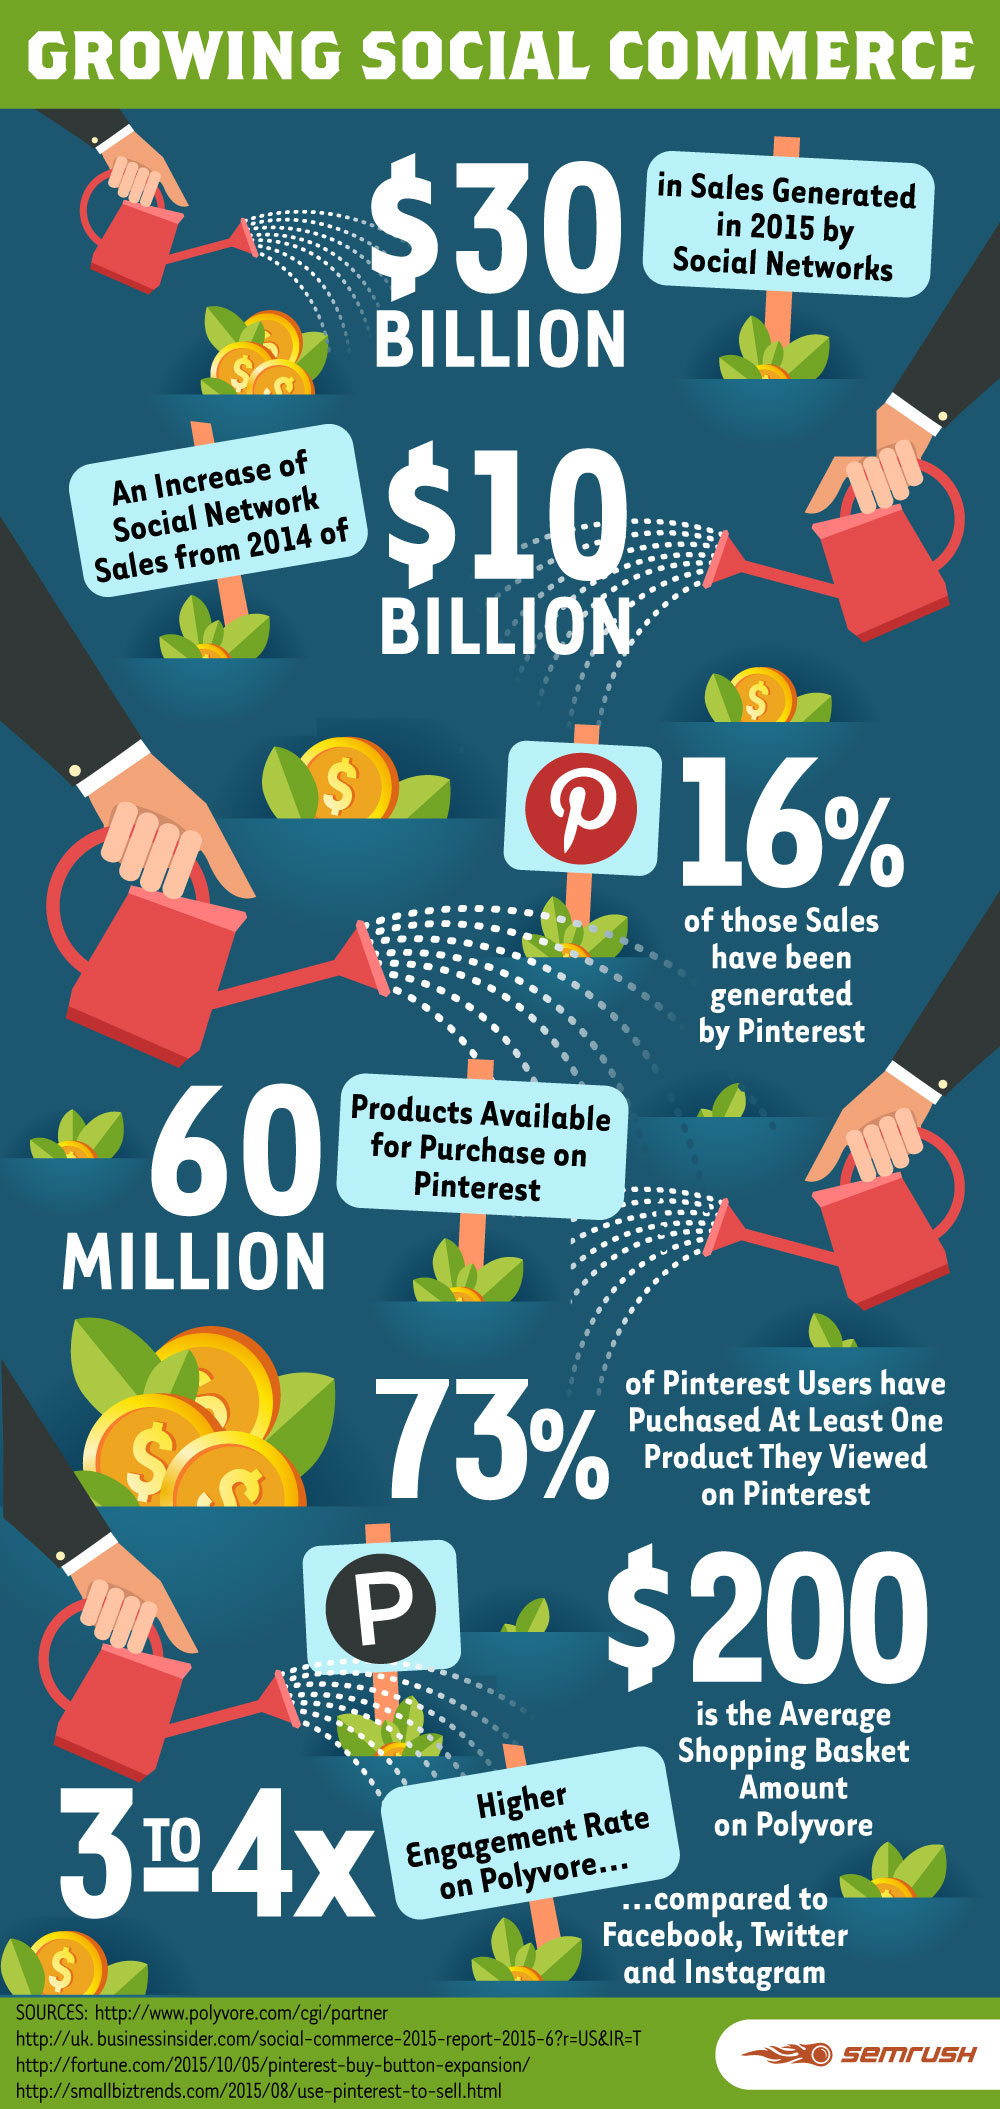 Social Commerce is Still Growing: Facebook, Pinterest and Polyvore Case Study. Image 0